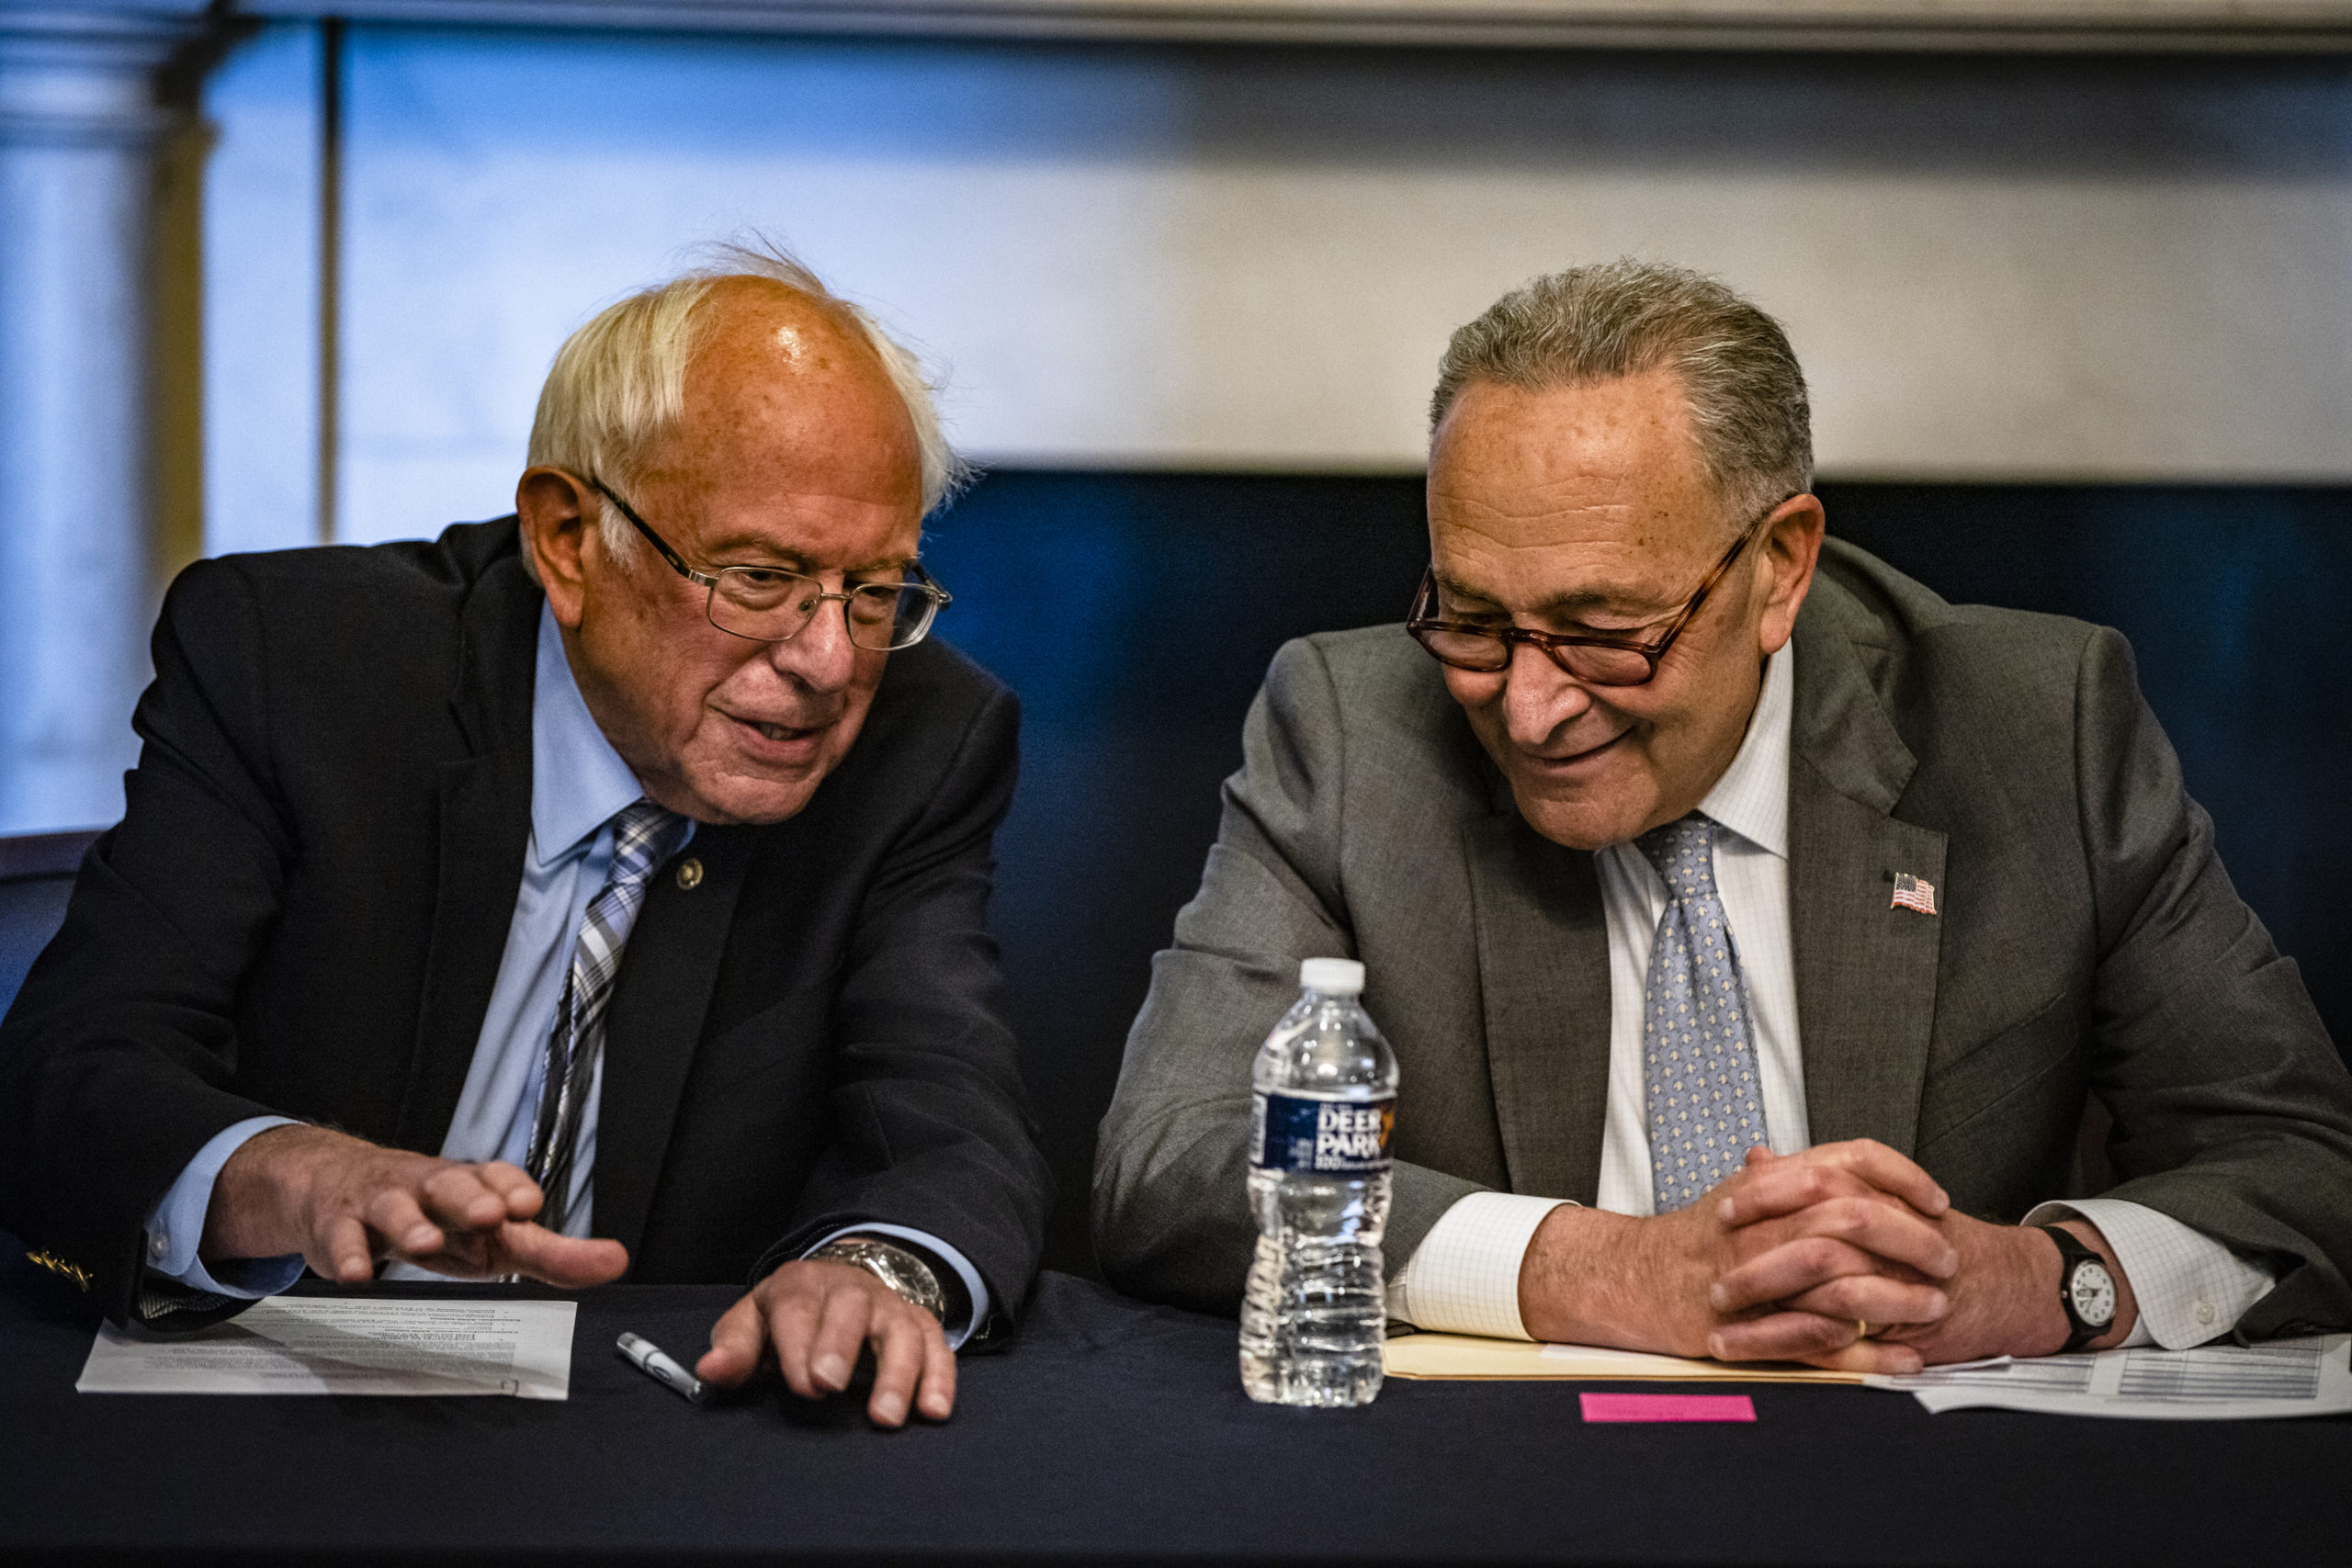 Senate Majority Leader Chuck Schumer and Budget Committee Chairman Bernie Sanders meet with Democrats about how to move forward with a second reconciliation package. (Samuel Corum/Getty Images)